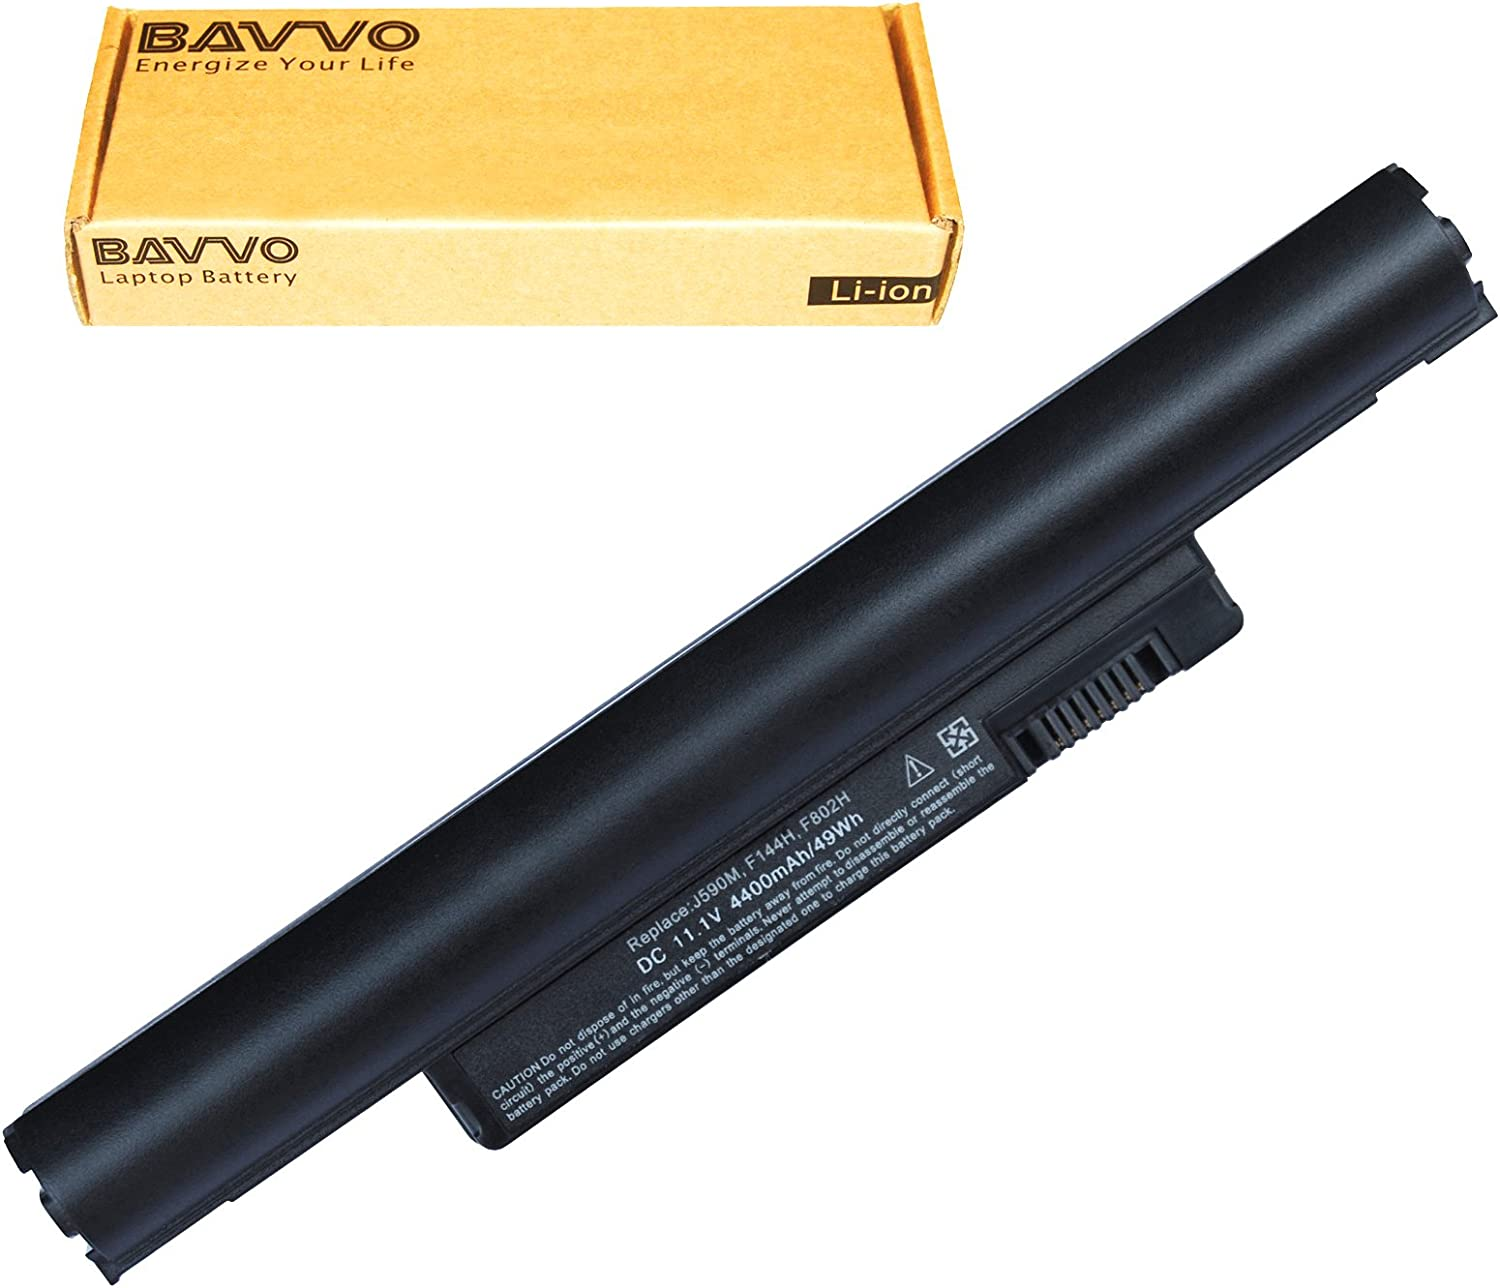 Bavvo Battery Compatible with DELL Inspiron Mini 10 10v 11z 1110 1011 H768N H769N, PN: 0D597P 0D830M 0F143M 0F144M 0H768N 0J590M 0K781 0K916P 0KIU10 0M456P 0M457P 0N531P